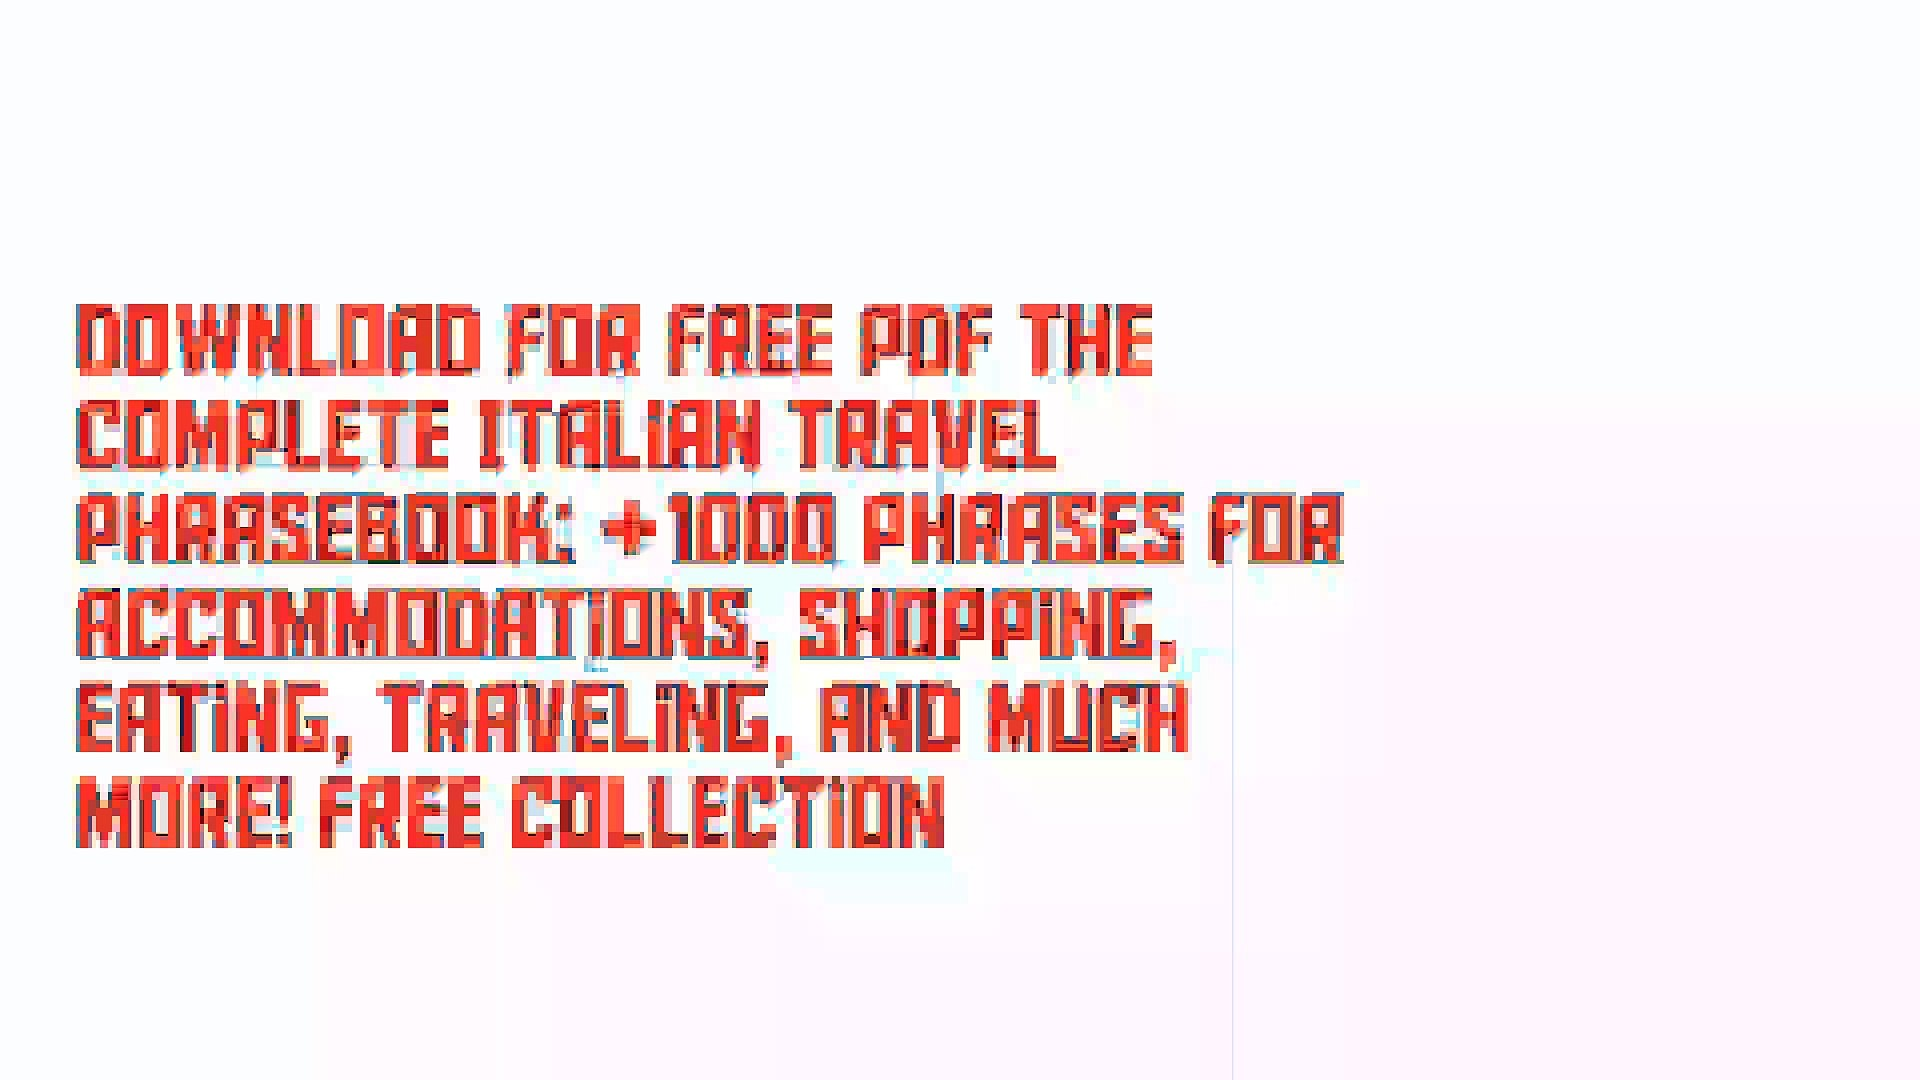 Download For Free PDF The Complete Italian Travel Phrasebook: +1000 Phrases for Accommodations, Shop